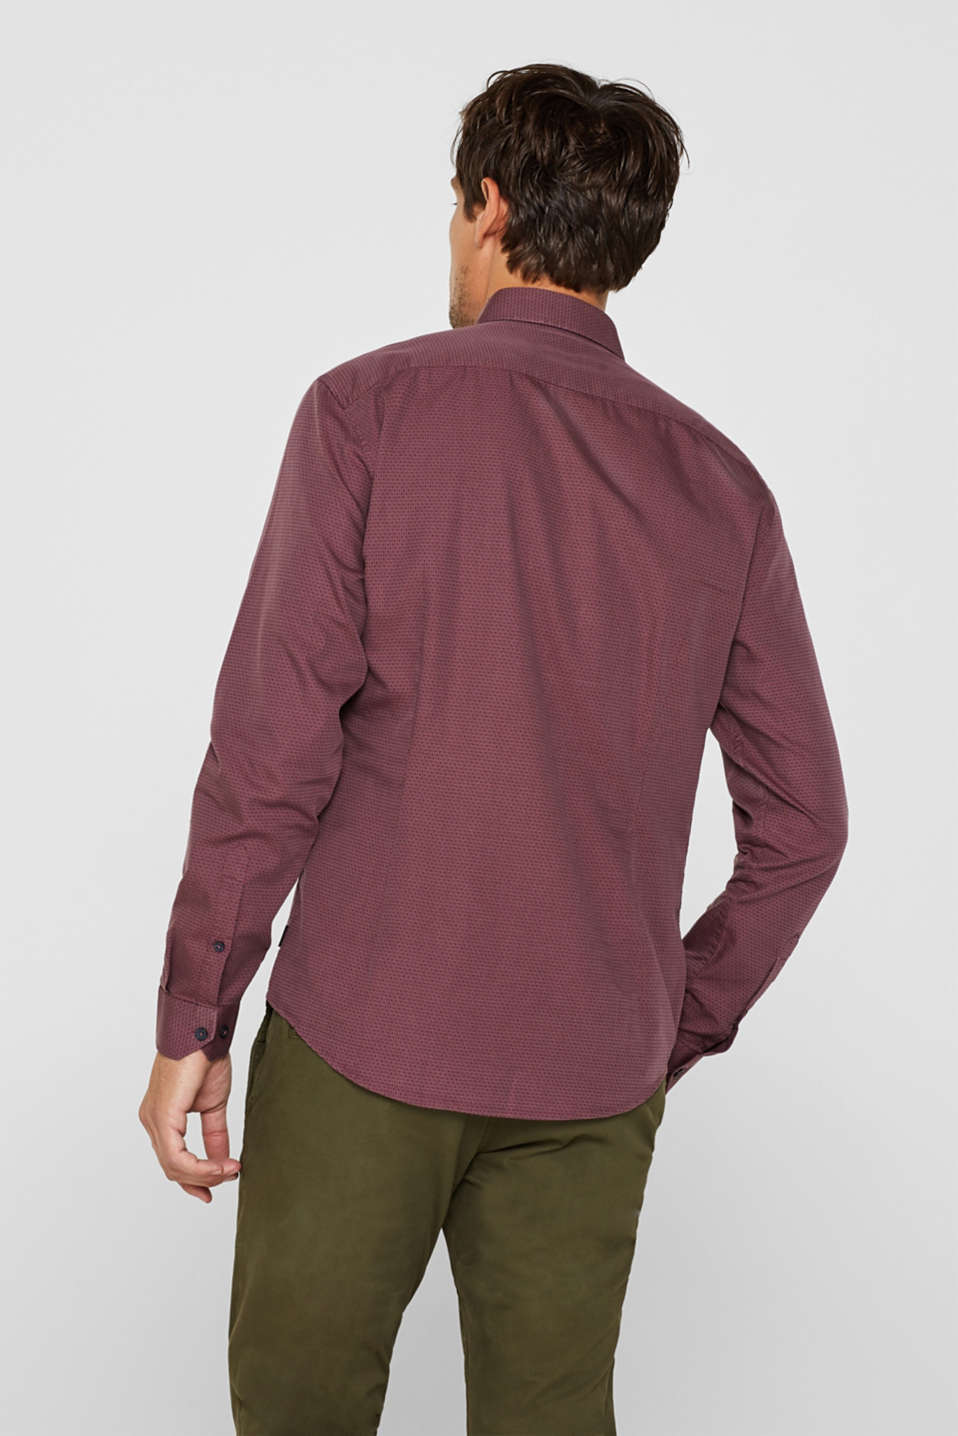 With wool: Top with a micro print, GARNET RED, detail image number 3